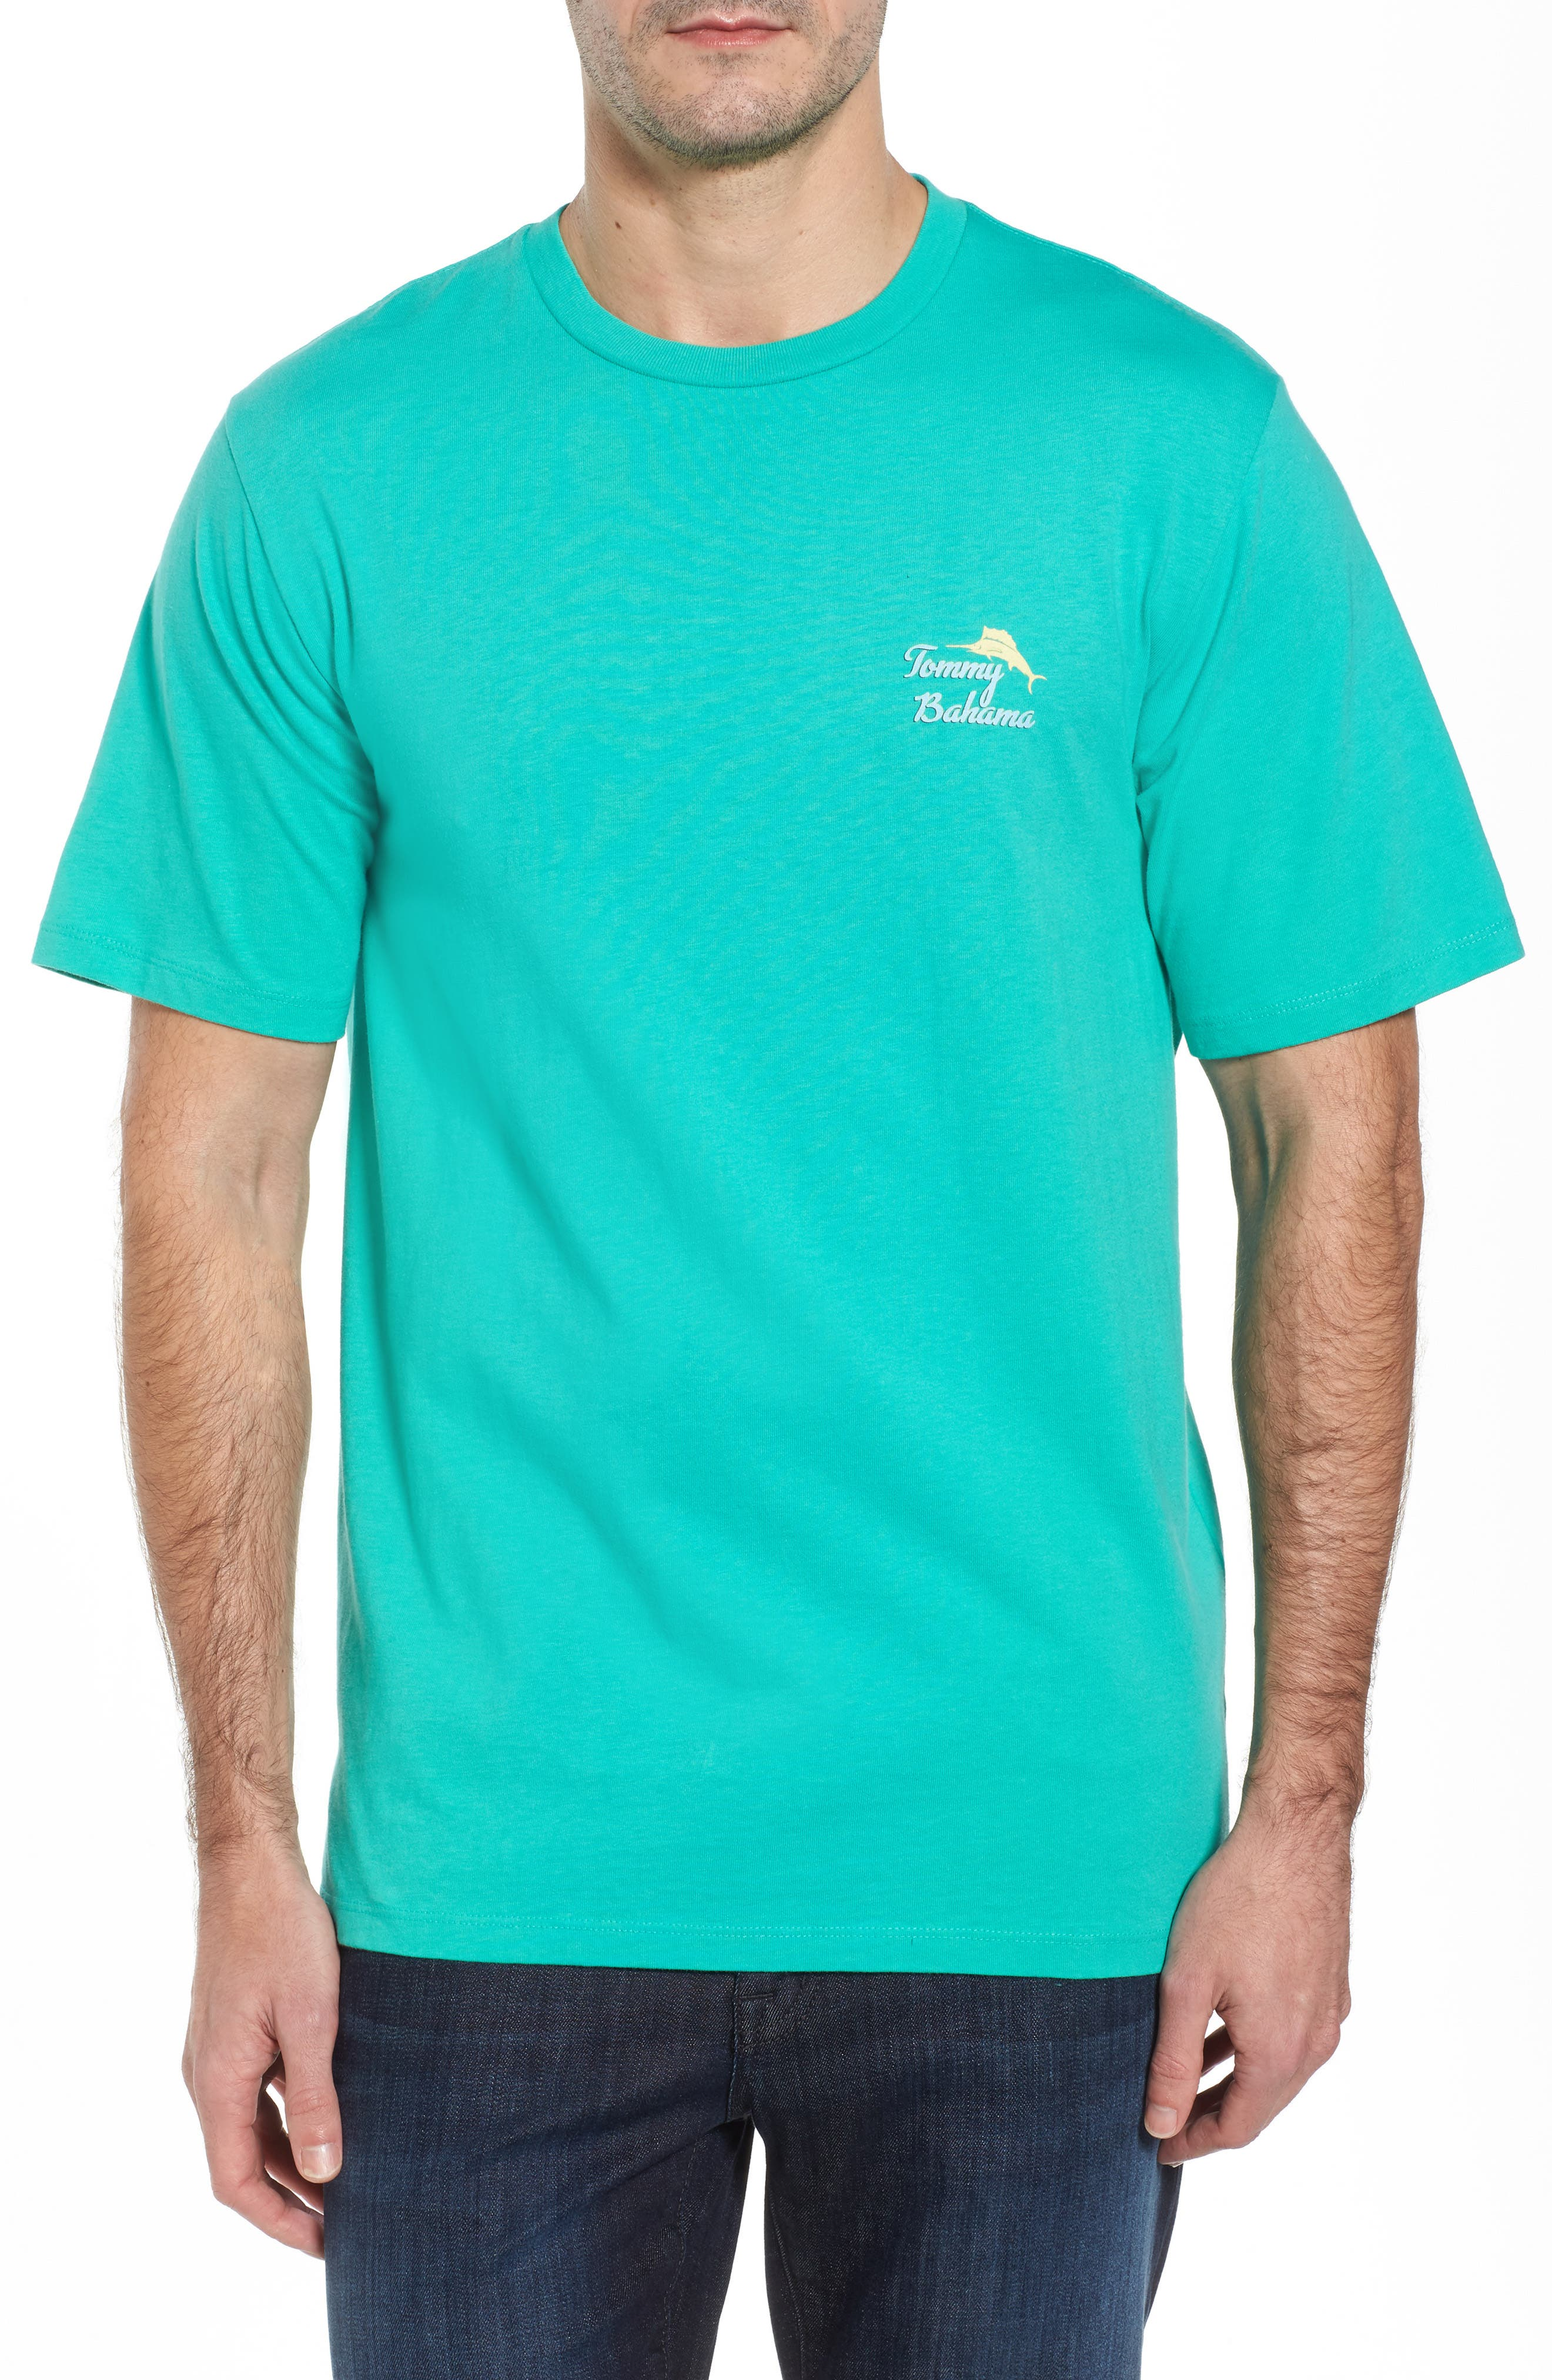 First Class Seat T-Shirt,                             Main thumbnail 1, color,                             Cave Green